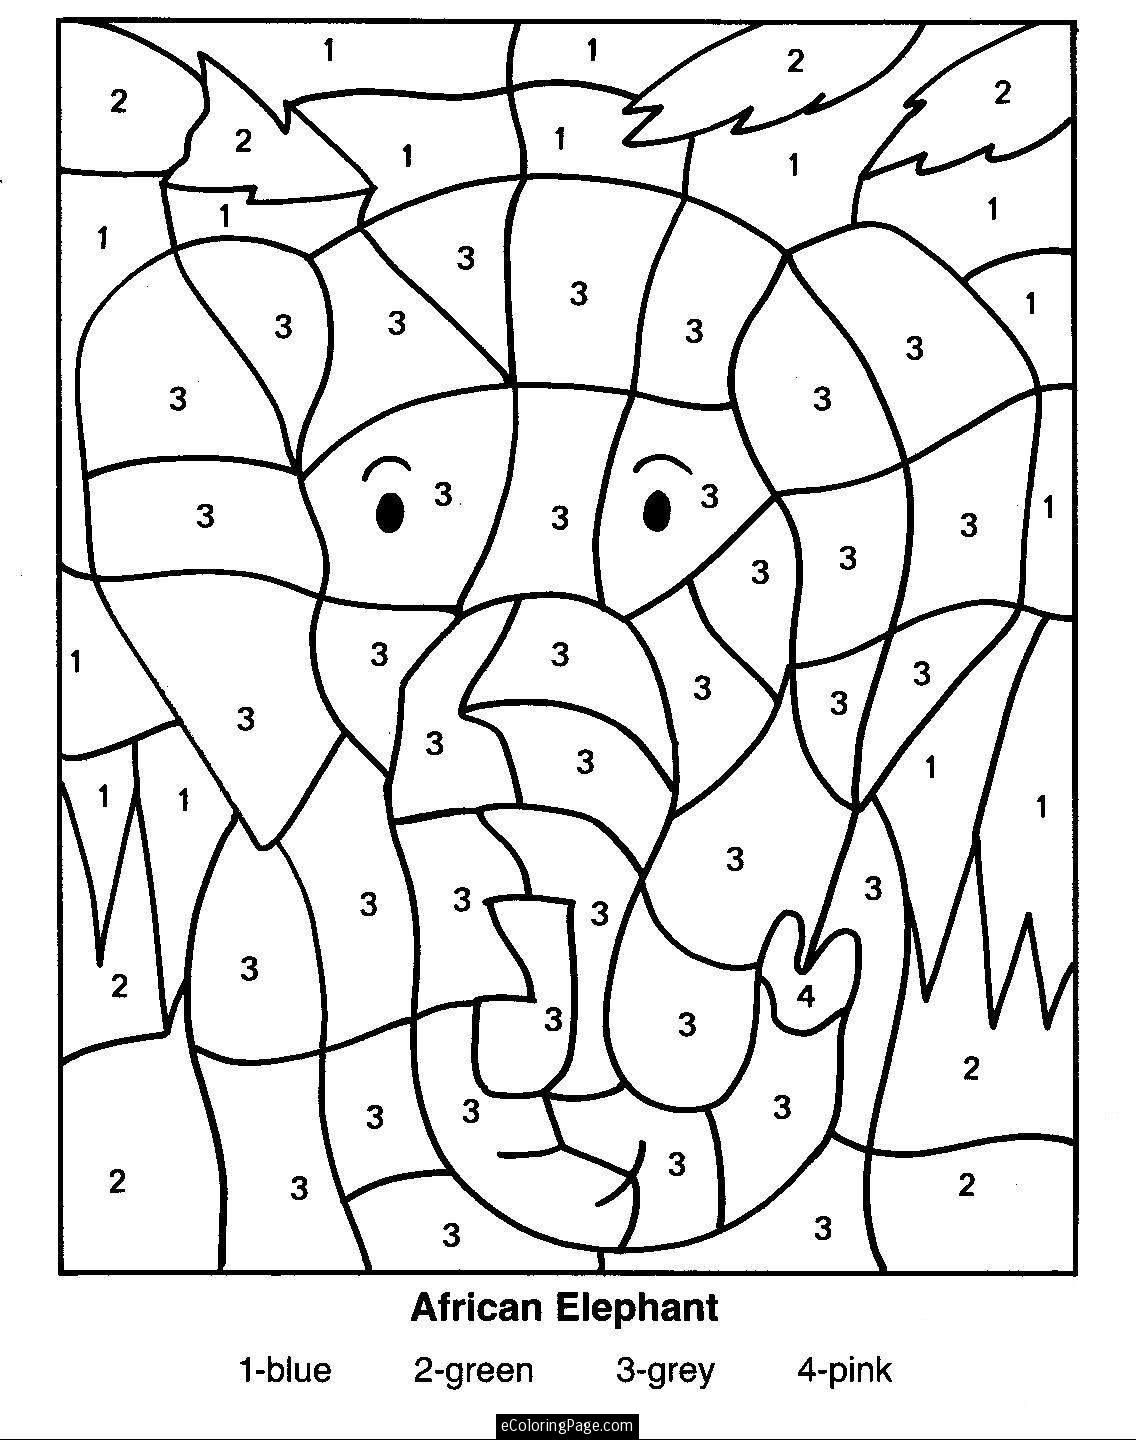 Colouring for kids games - Kids Coloring Pages